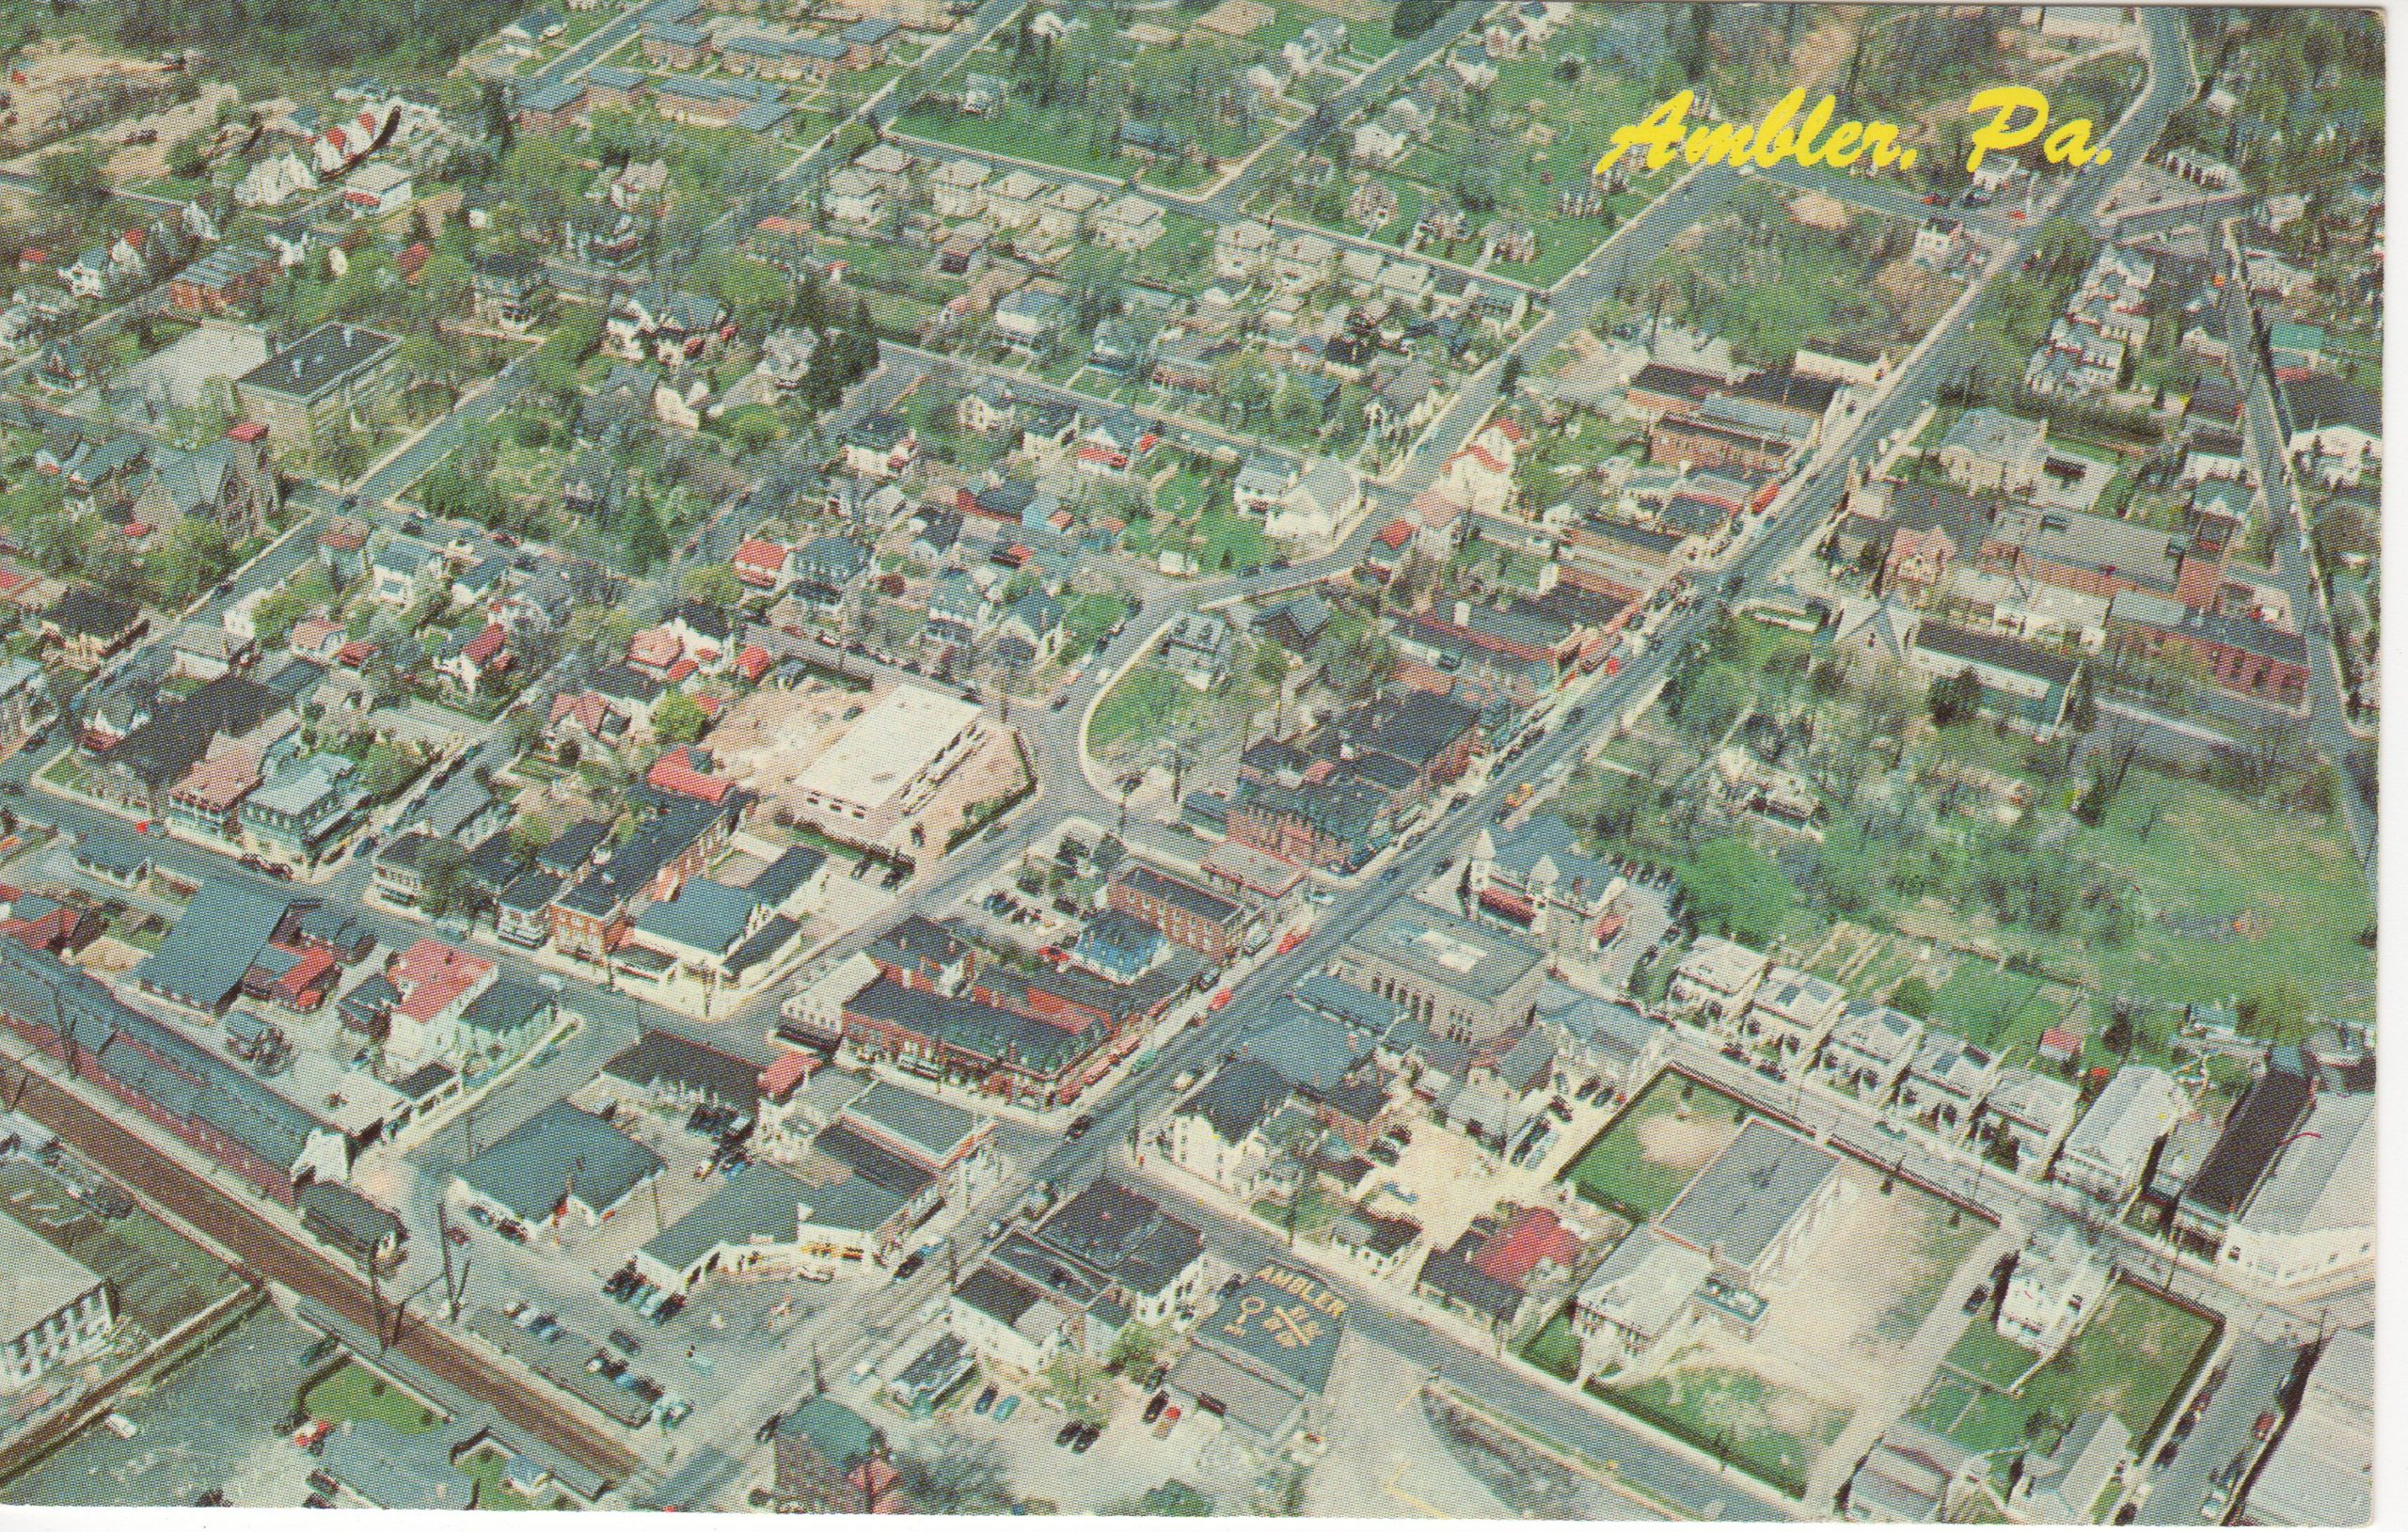 4125.26 Ambler Pa Postcard_Aerial View of Ambler